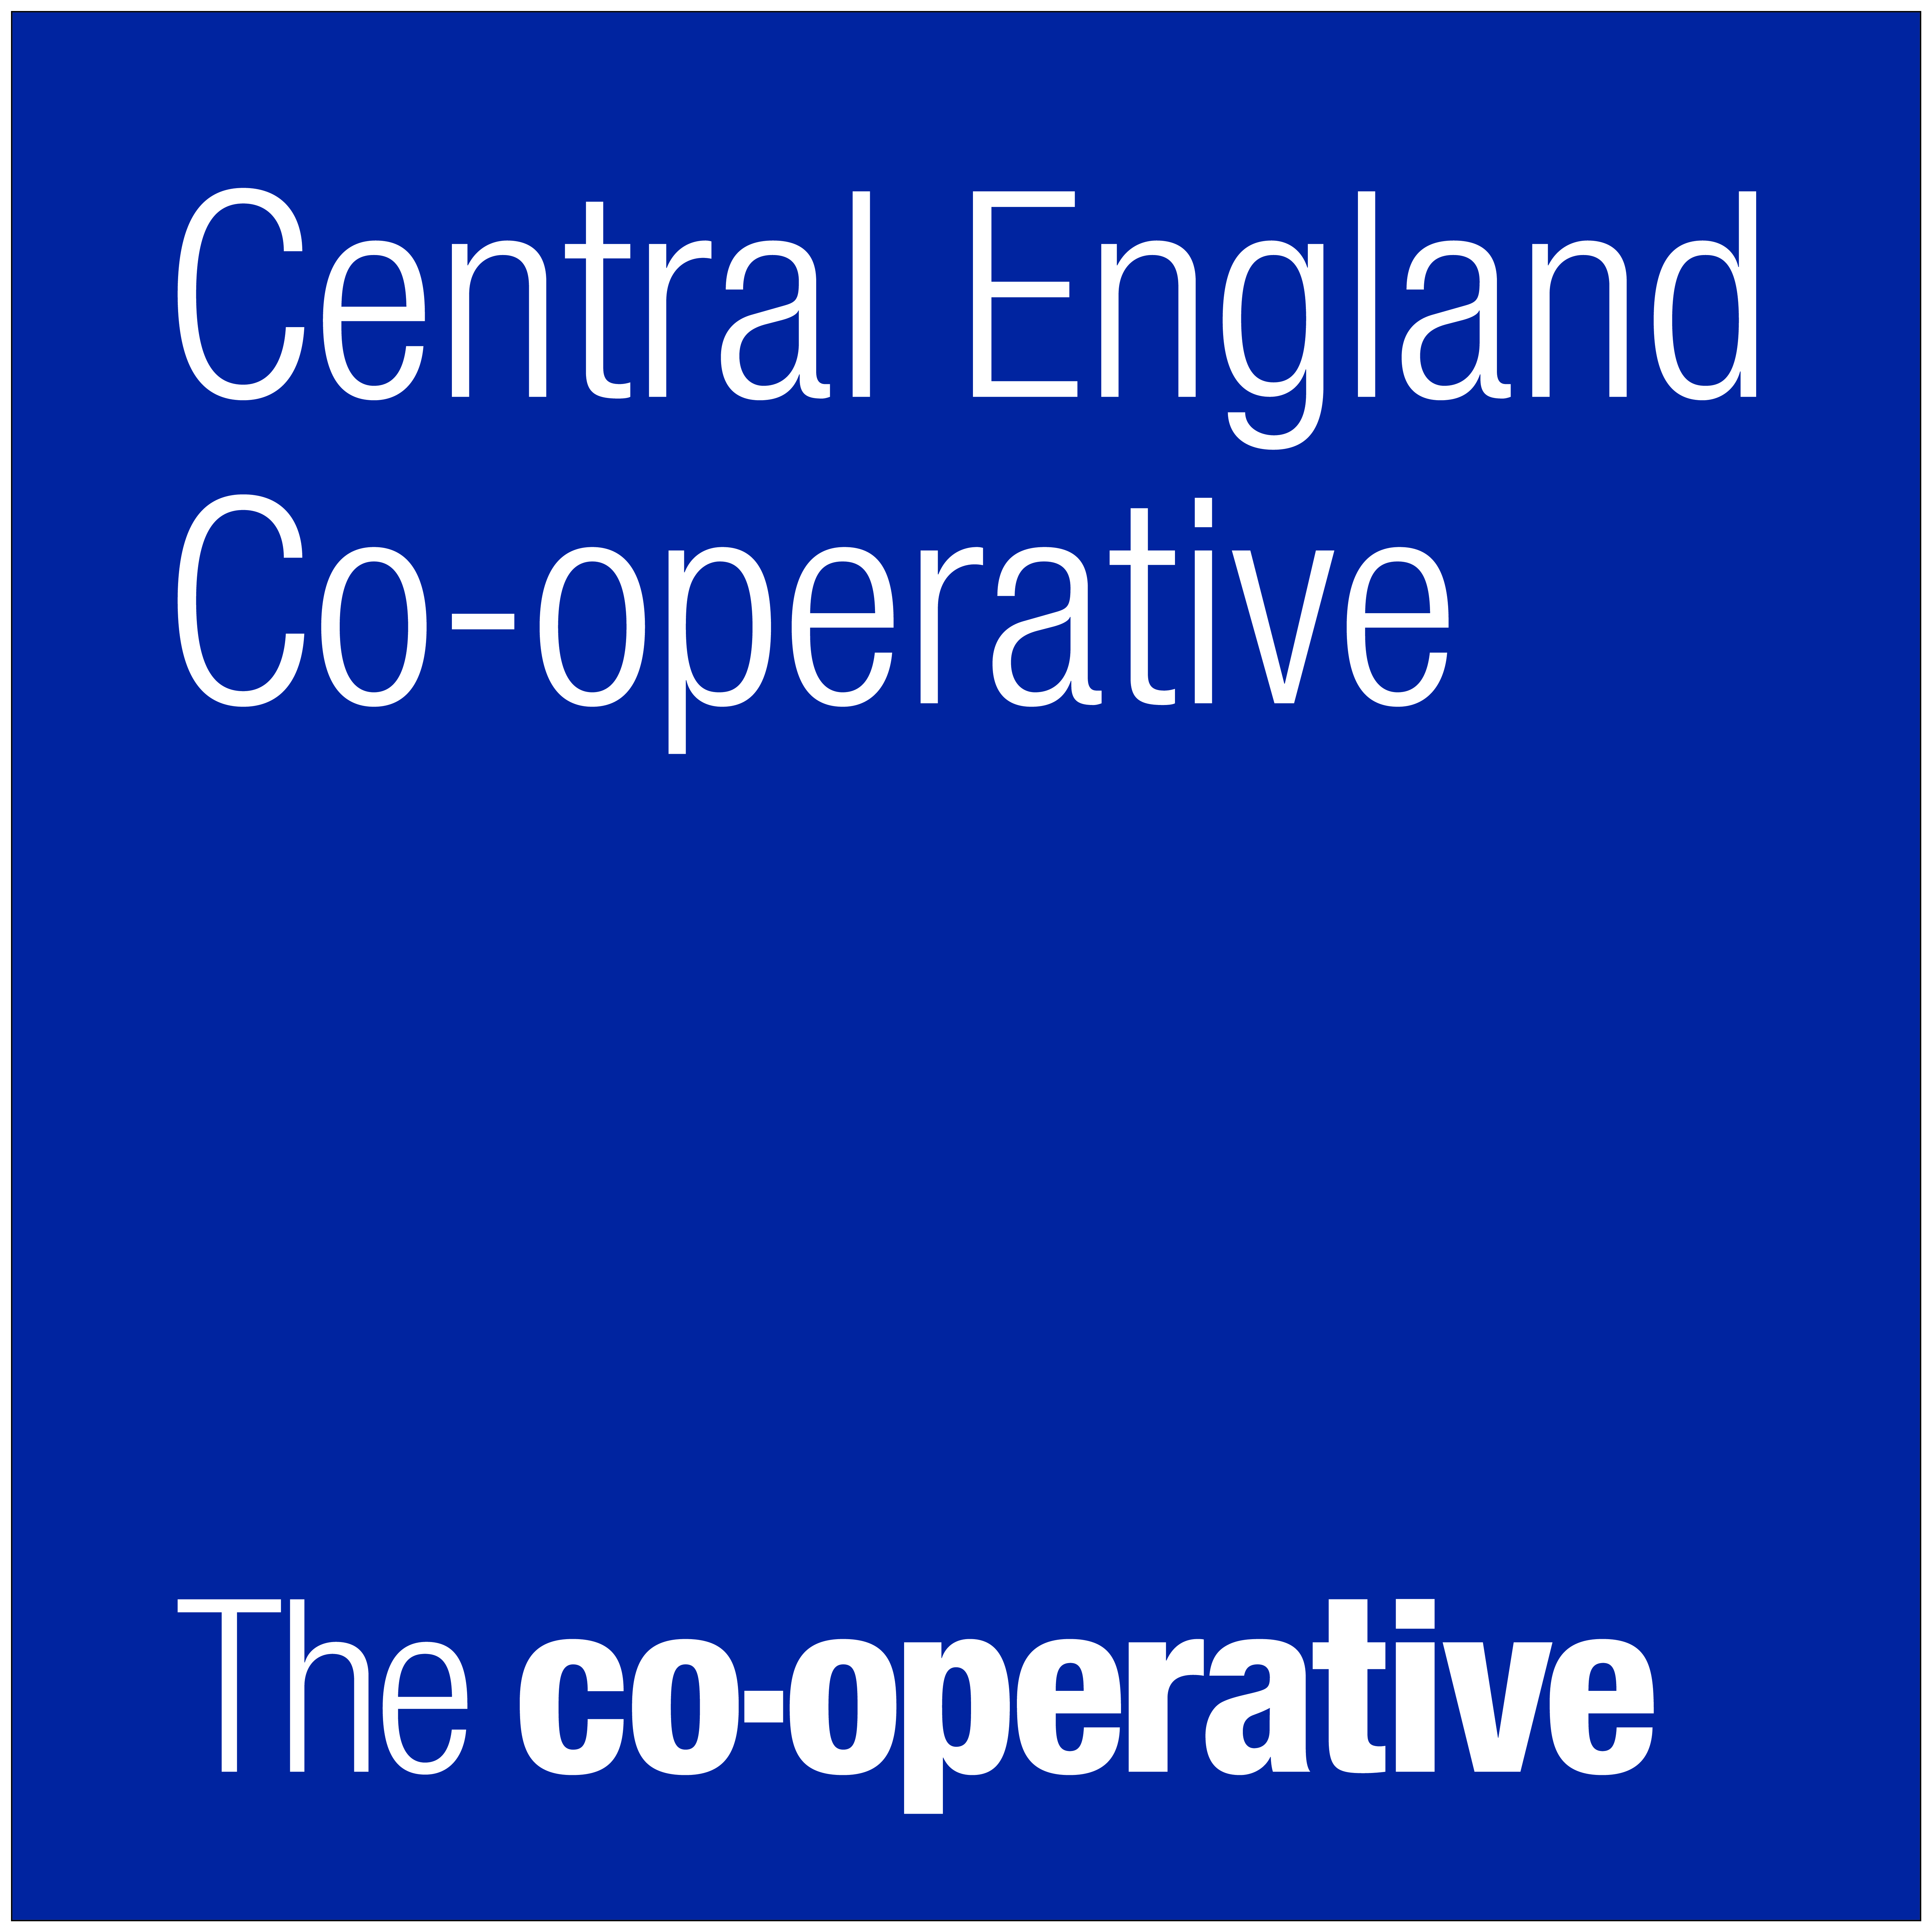 The Central England Co-operative